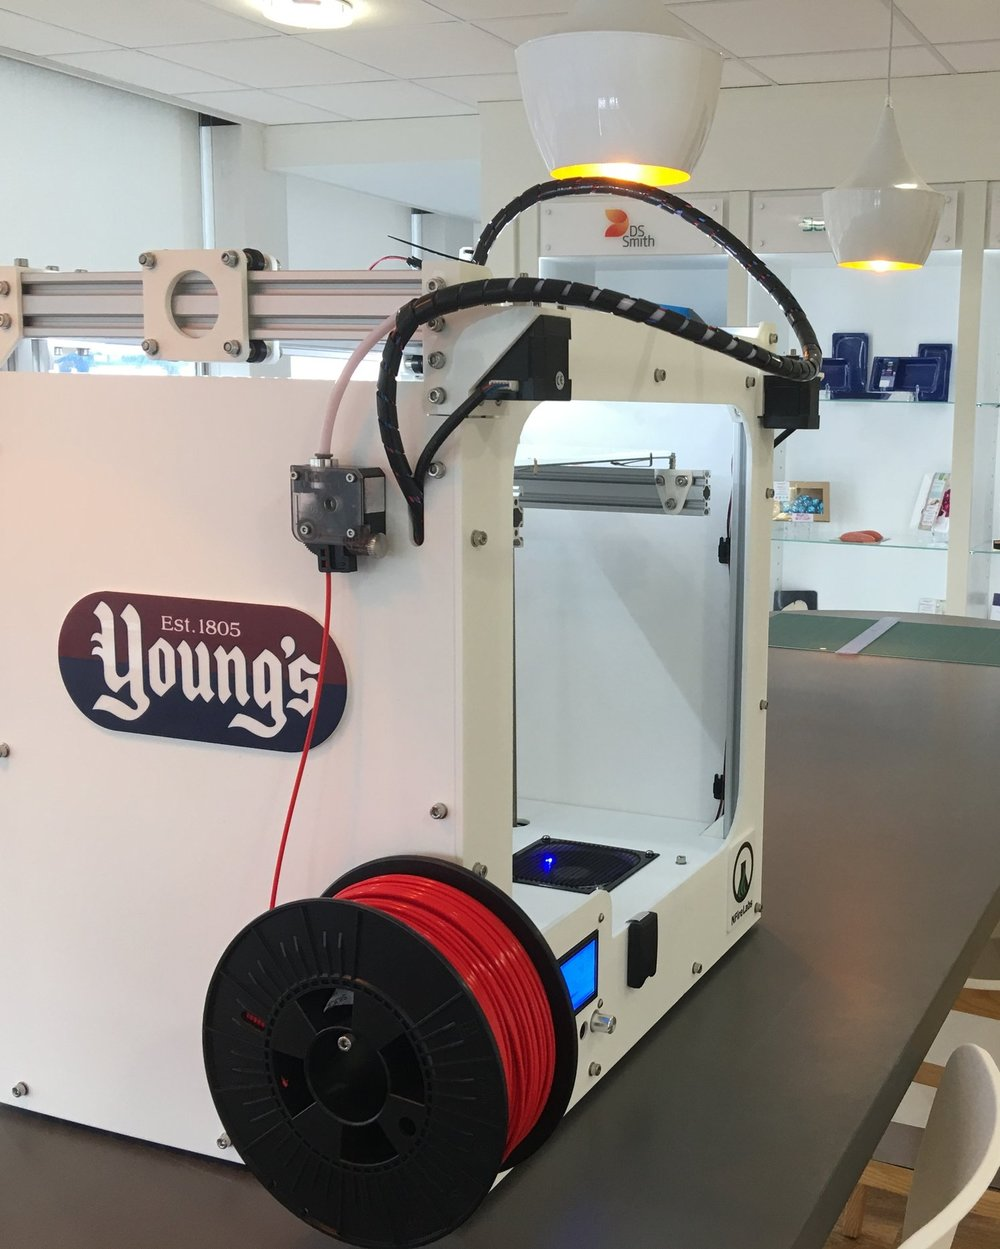 Young's 3D Printer in their Innovation Centre